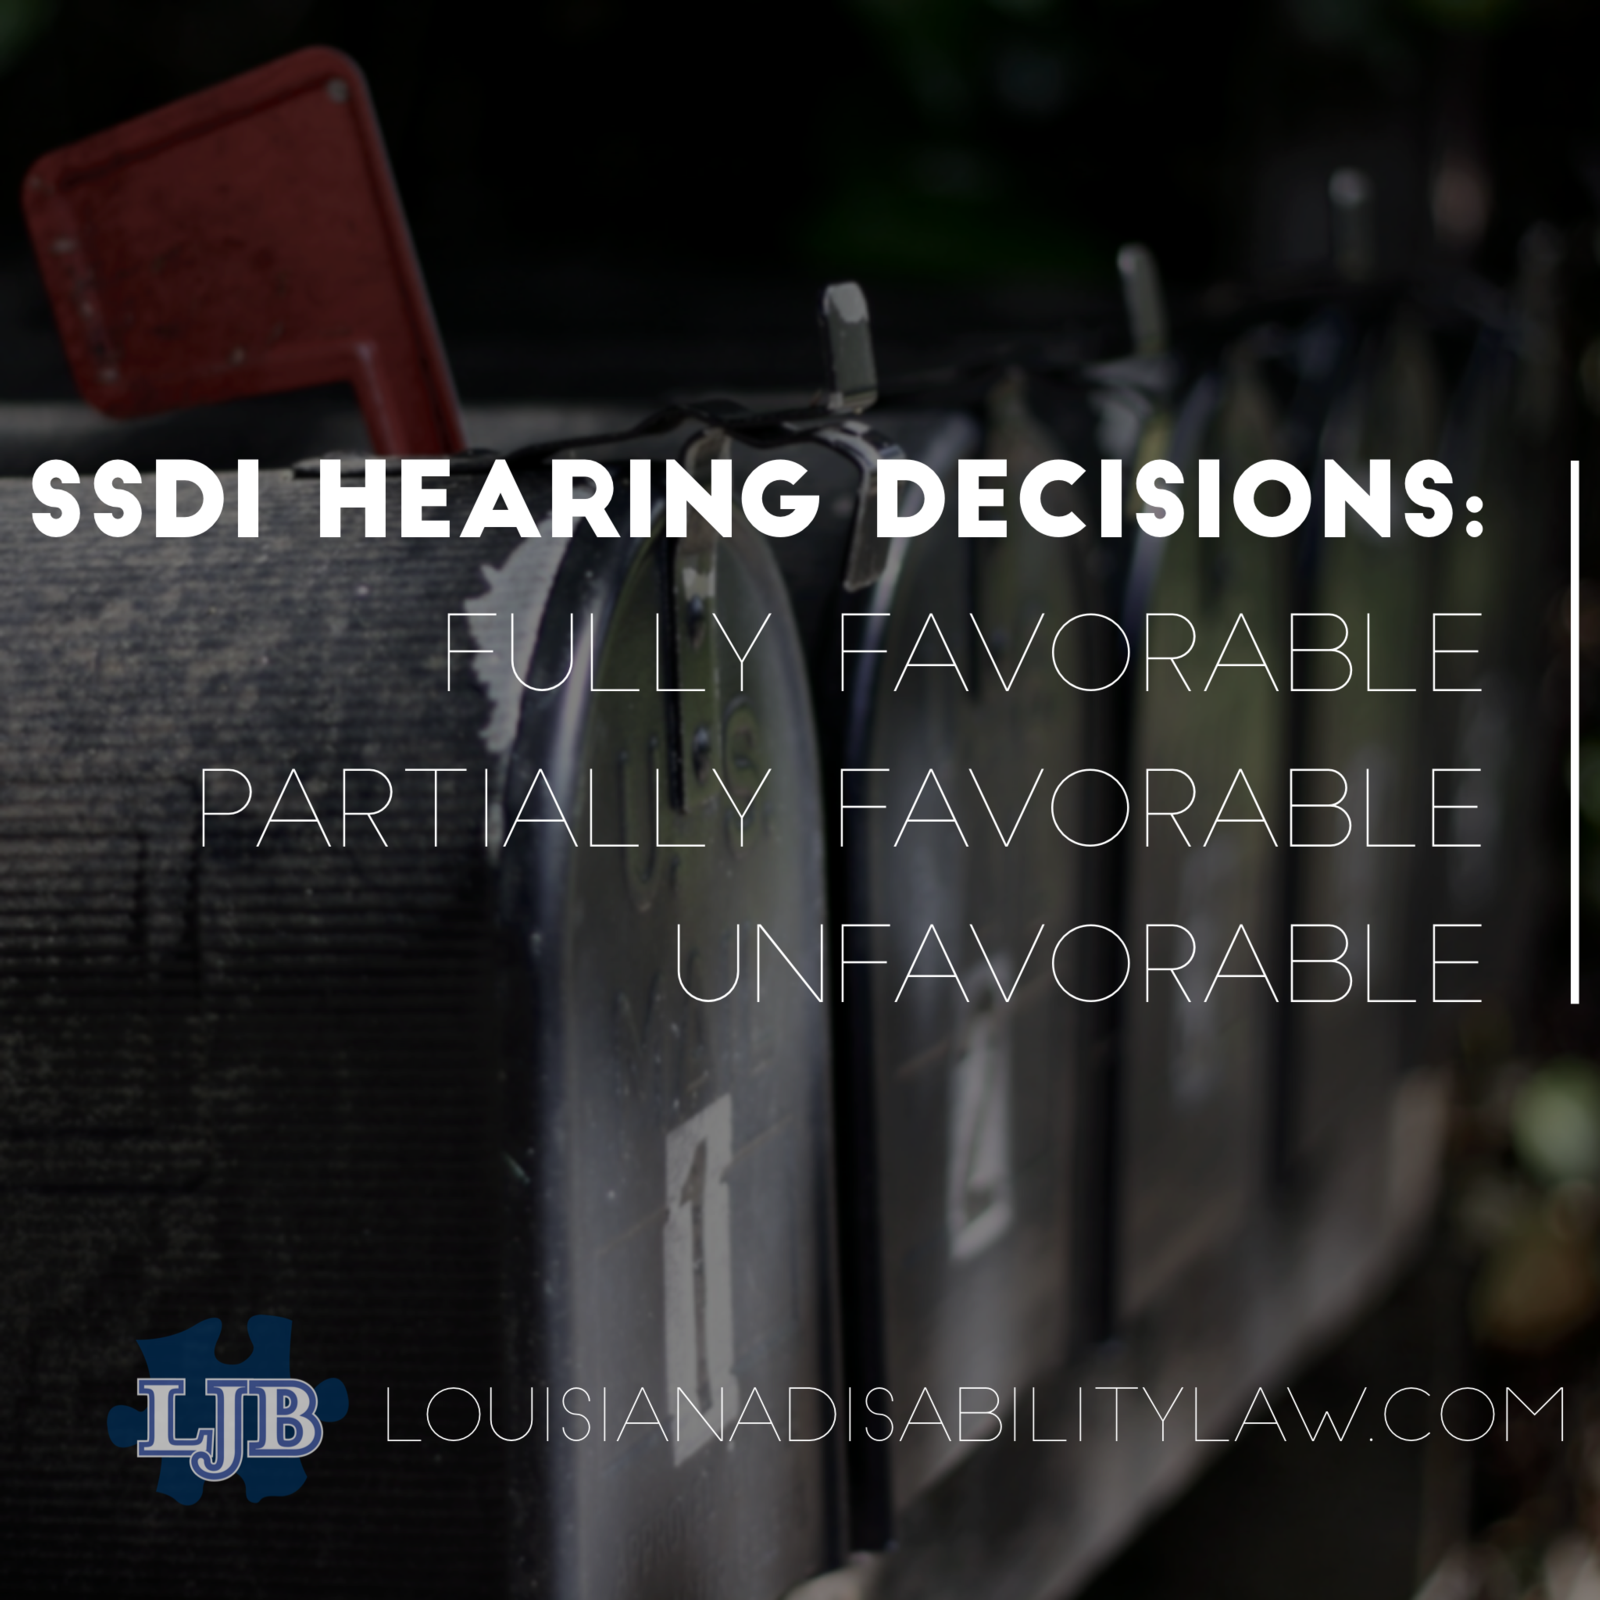 SSDI Hearing Decisions: Fully Favorable, Partially Favorable, Unfavorable